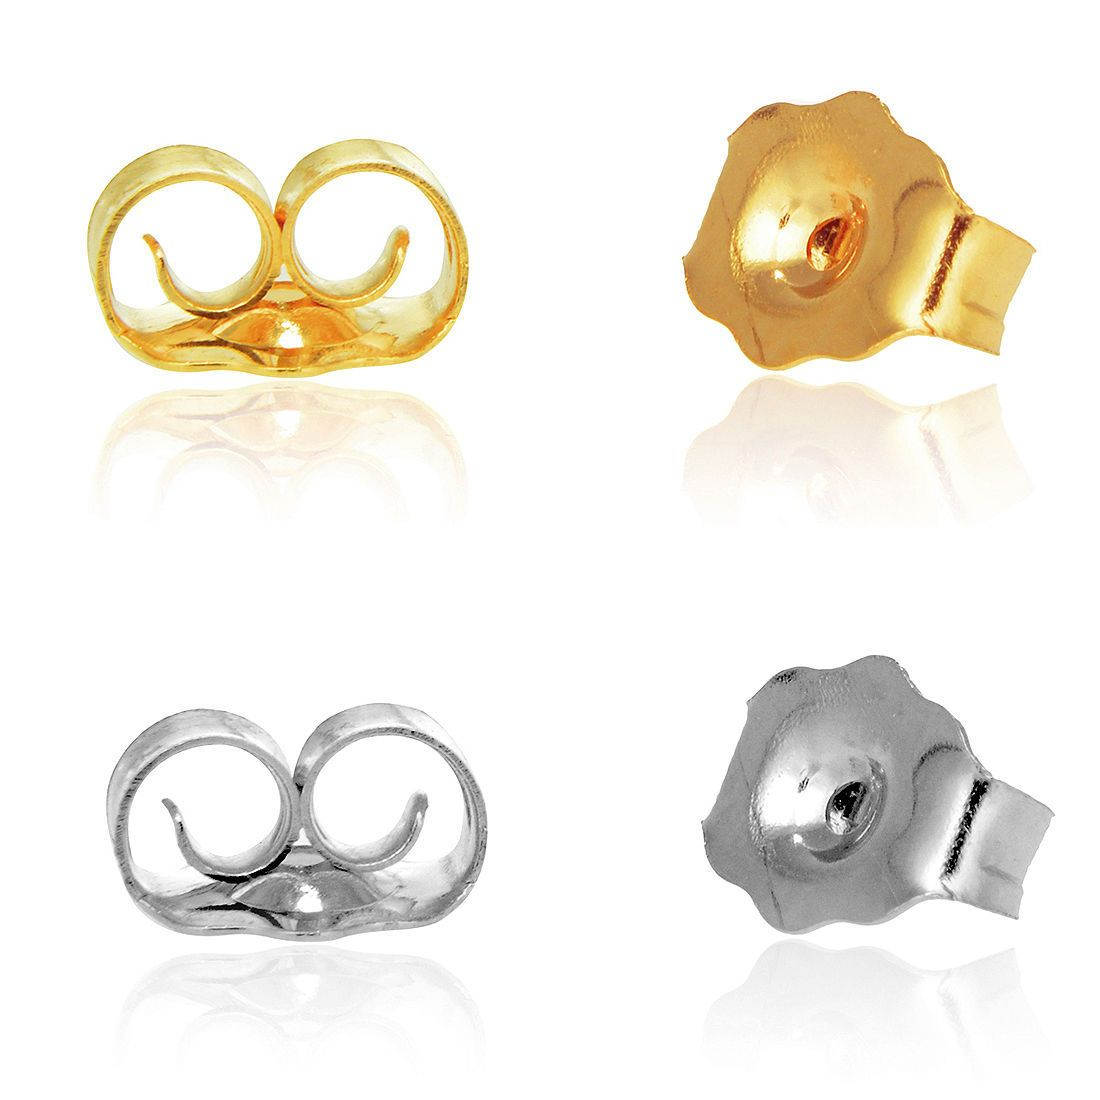 Cliffside Jewelers - 14K Yellow Or White Gold Ear Nuts Butterfly Replacement Heavy Earring Backs, $13.00 (http://www.cliffsidejewelers.com/14k-yellow-or-white-gold-ear-nuts-butterfly-replacement-heavy-earring-backs/)